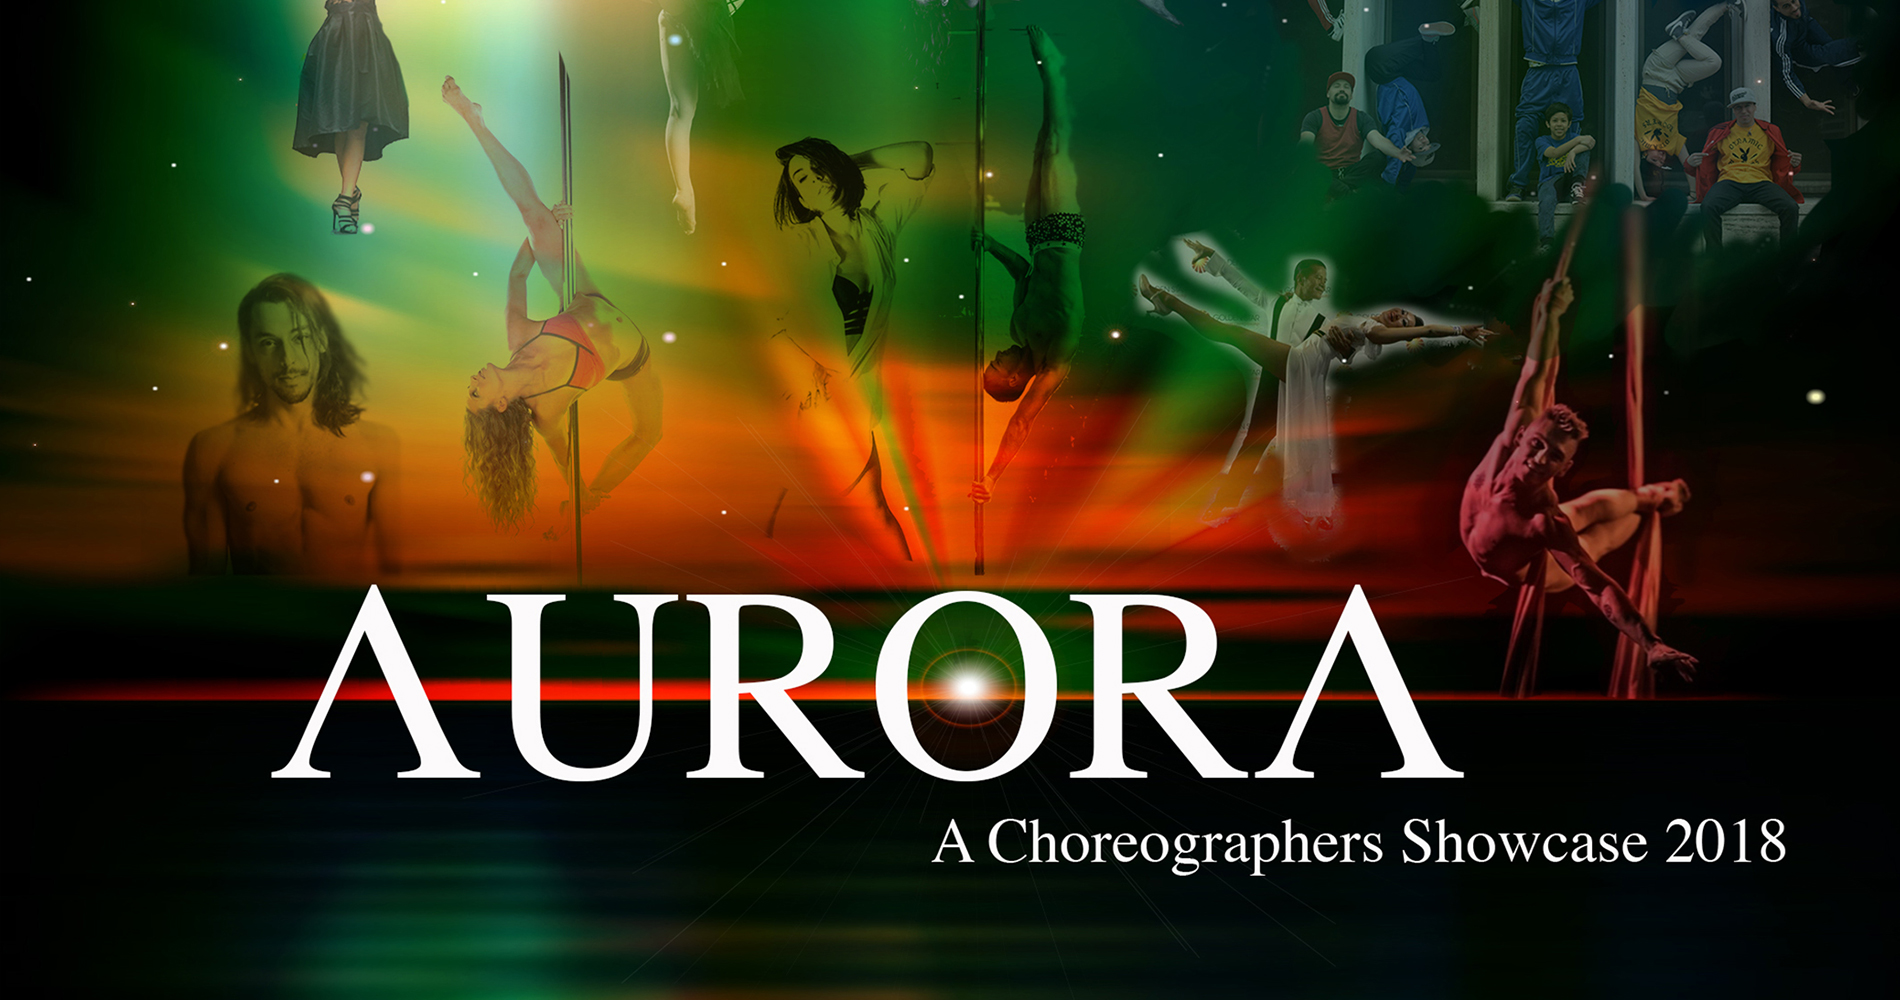 AURORA: A Choreographer's Showcase at Body & Pole